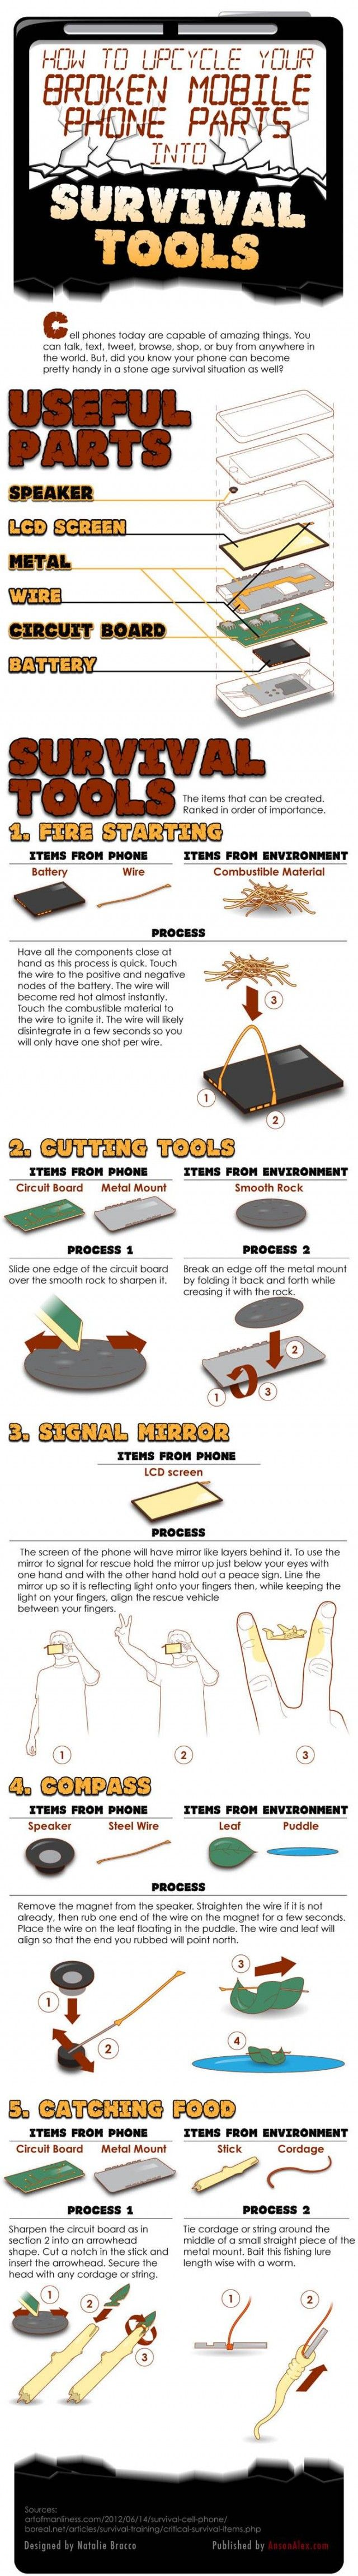 How To Use Your Cell Phone as a Survival Tool [Infographic]  If you're down to nothing but the bare essentials, breaking your phone might just save your life.  You can make your battery combust to create a fire simply by attaching a wire (found from inside your phone) to the positive and negative nodes. Other uses include widdling your circuit board or metal back case to make a good cutting or hunting tool. My personal favorite is the LCD screen that can alert a flying plane to your…